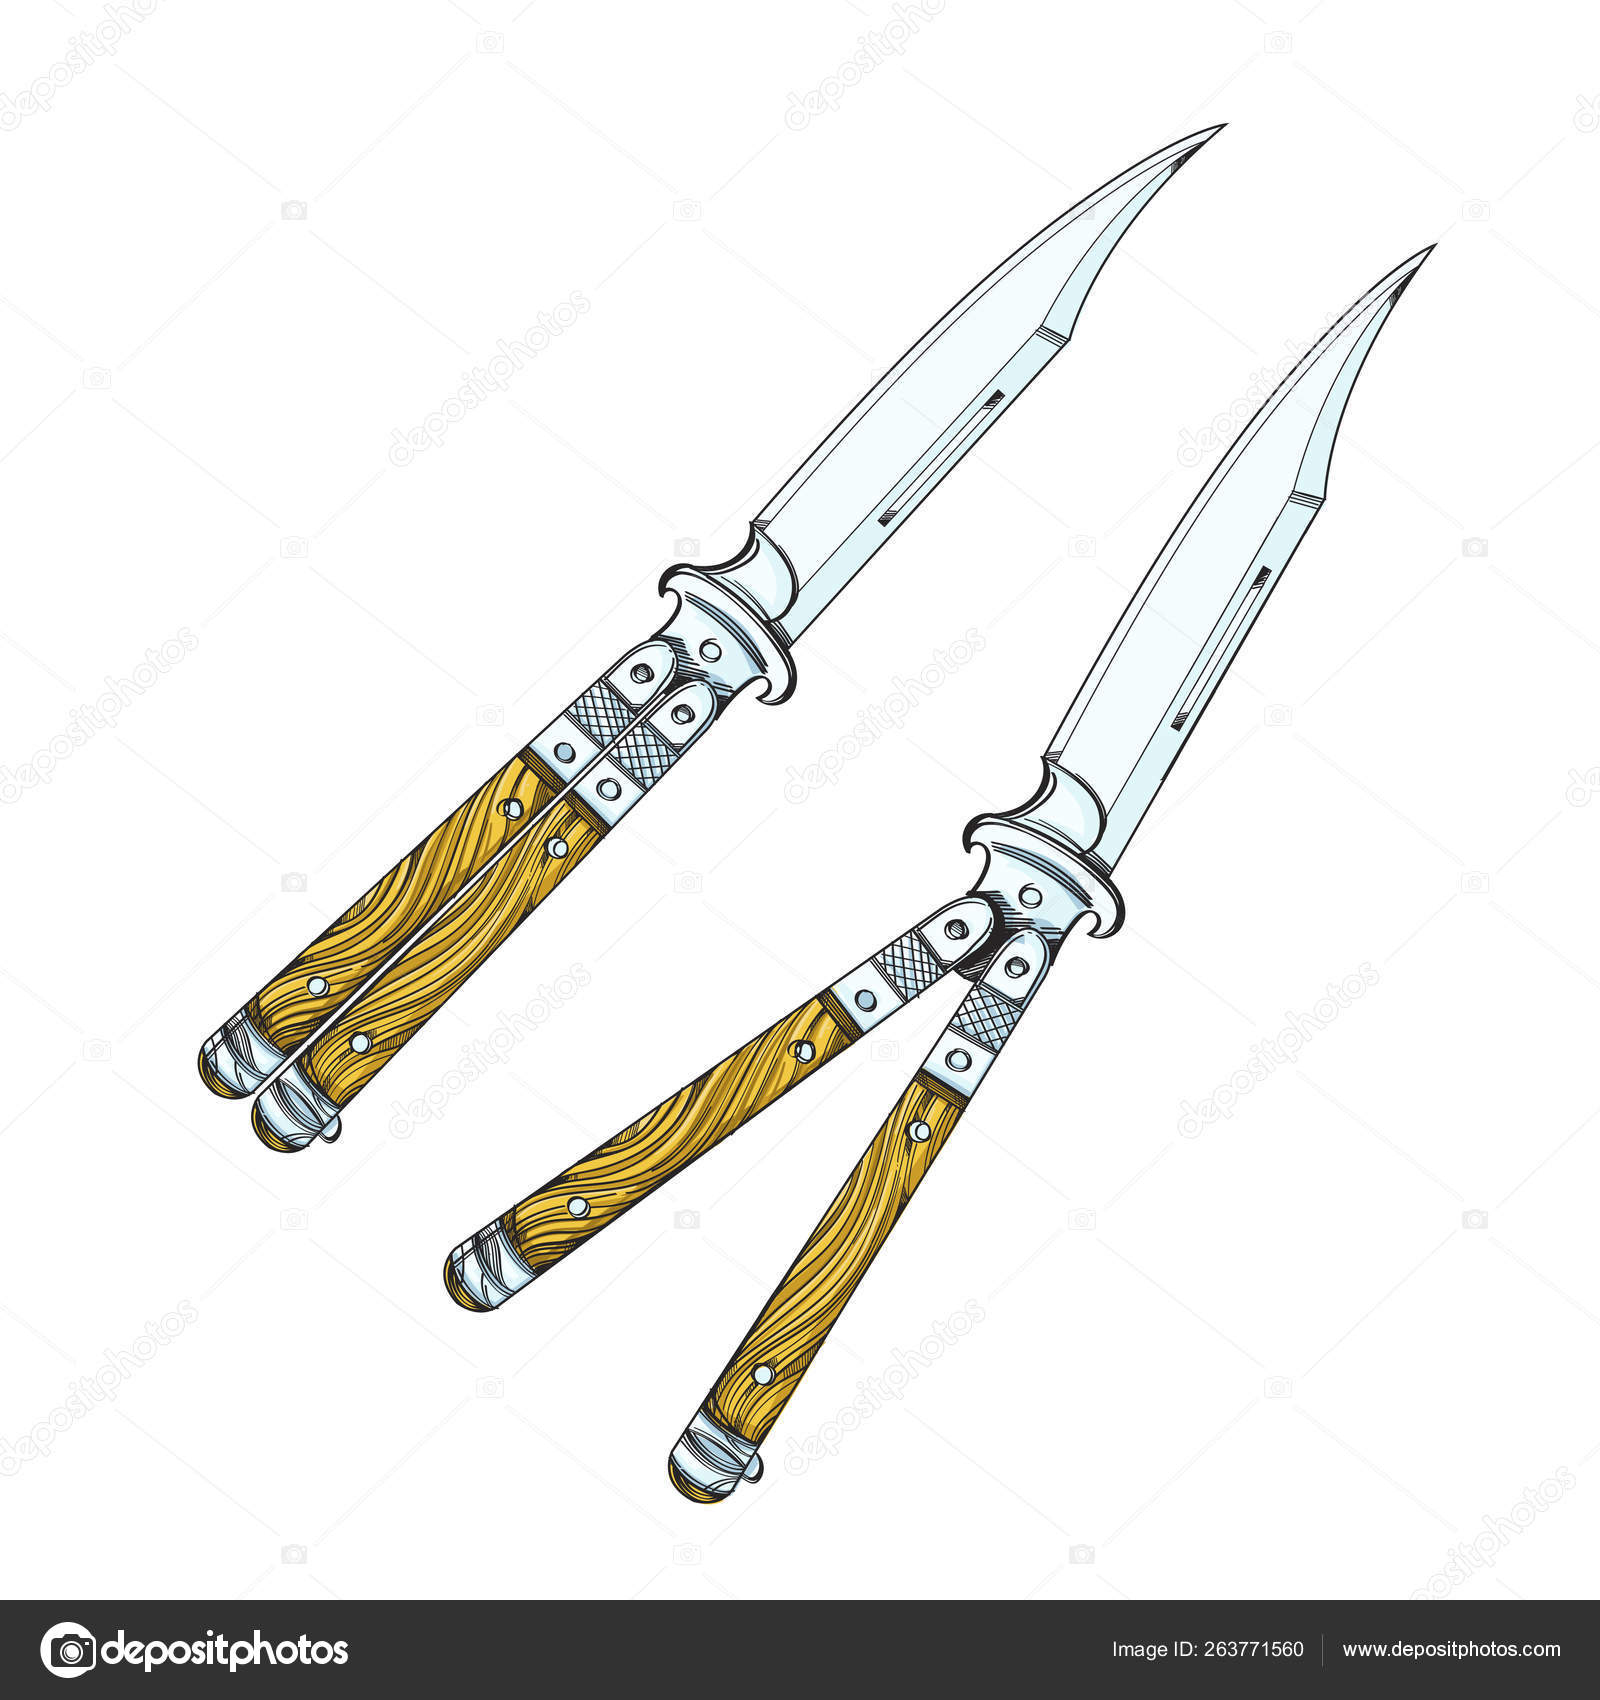 Butterfly Knife Balisong Vector Illustration Isolated On